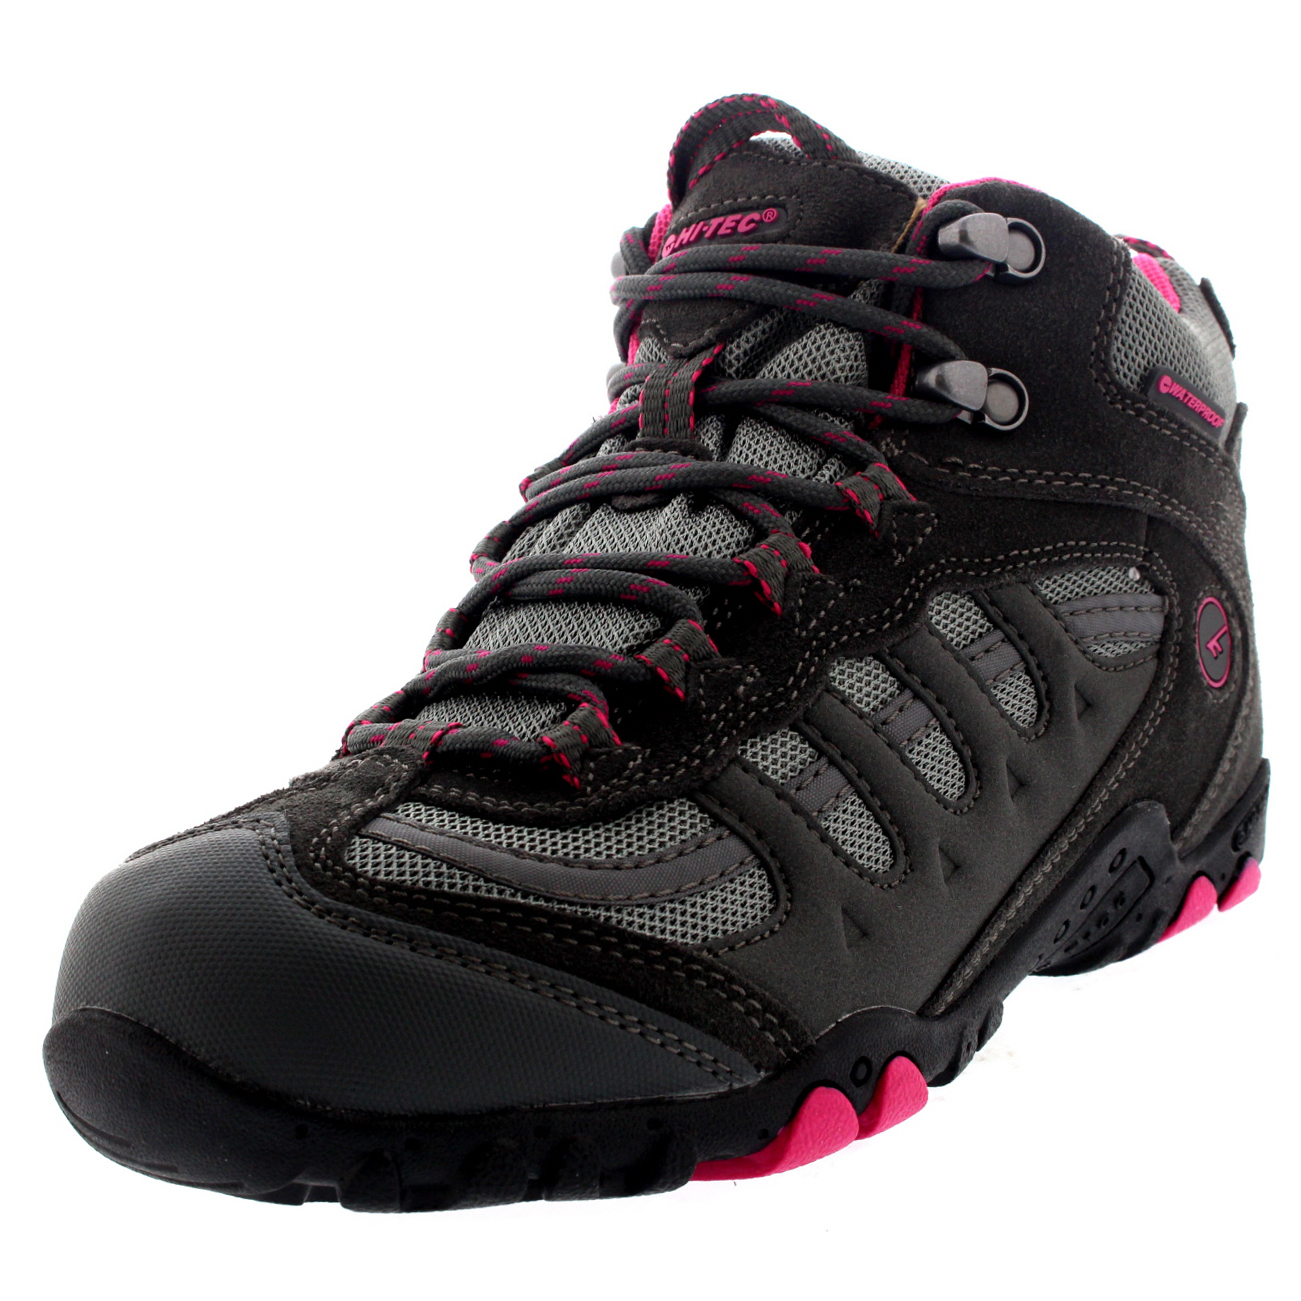 4332bc79c Details about Womens Hi-Tec Penrith Mid Walking Waterproof Ankle Boots  Hiking Trainers US 5-10